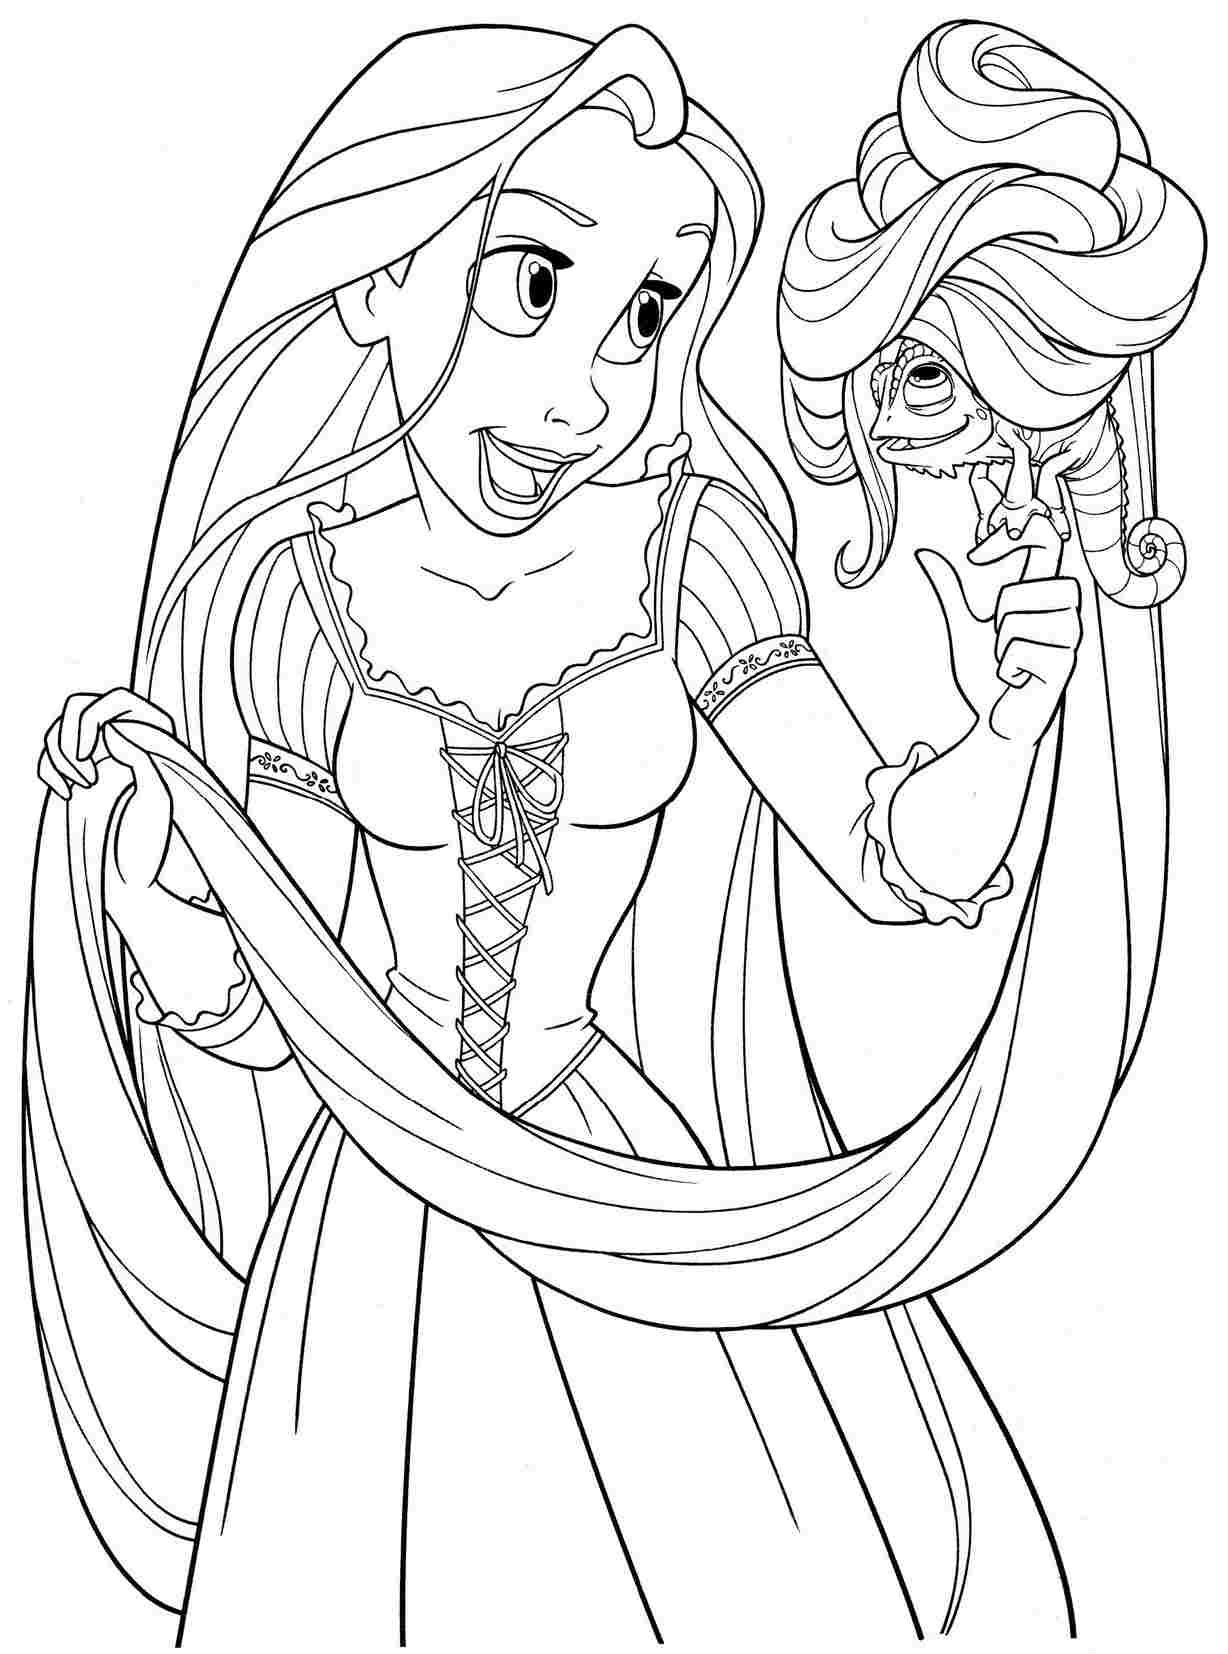 Princess coloring in page - Printable Free Colouring Pages Disney Princess Rapunzel For Kids Boys